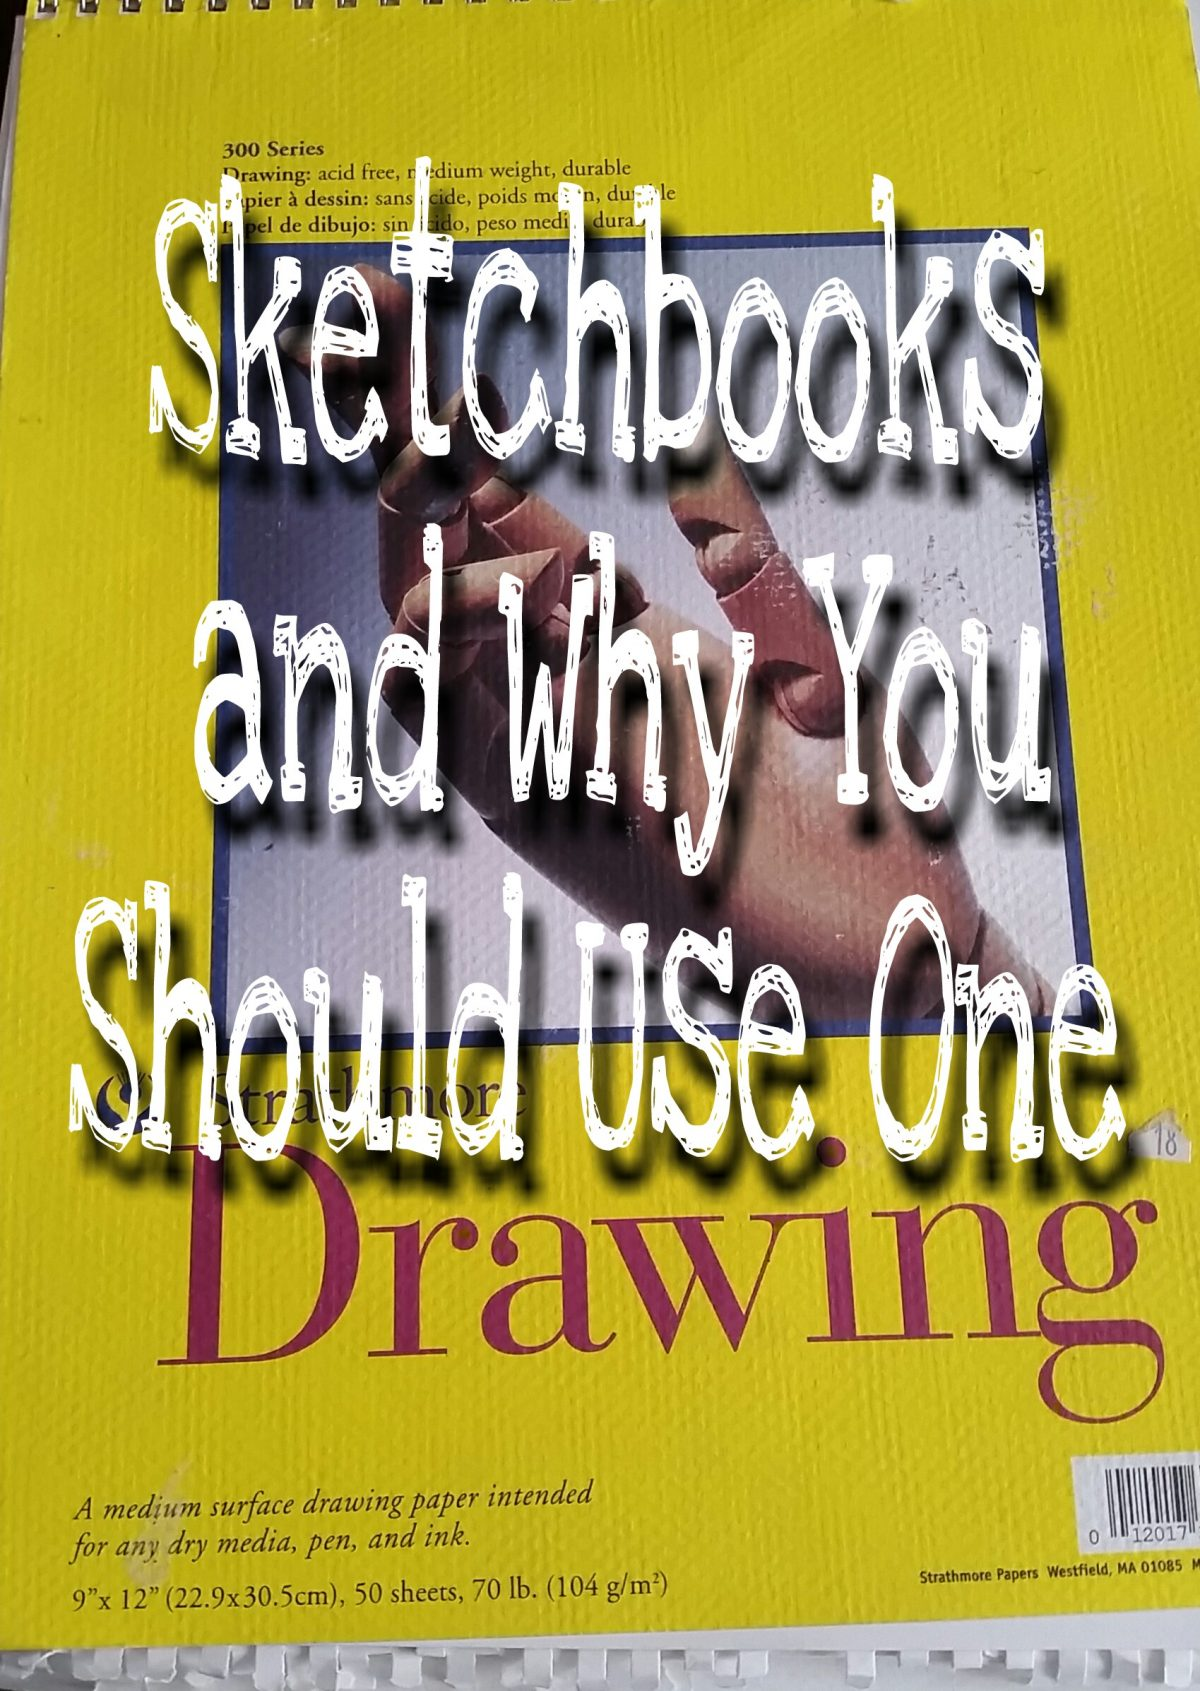 Sketchbooks and Why You Should Keep One